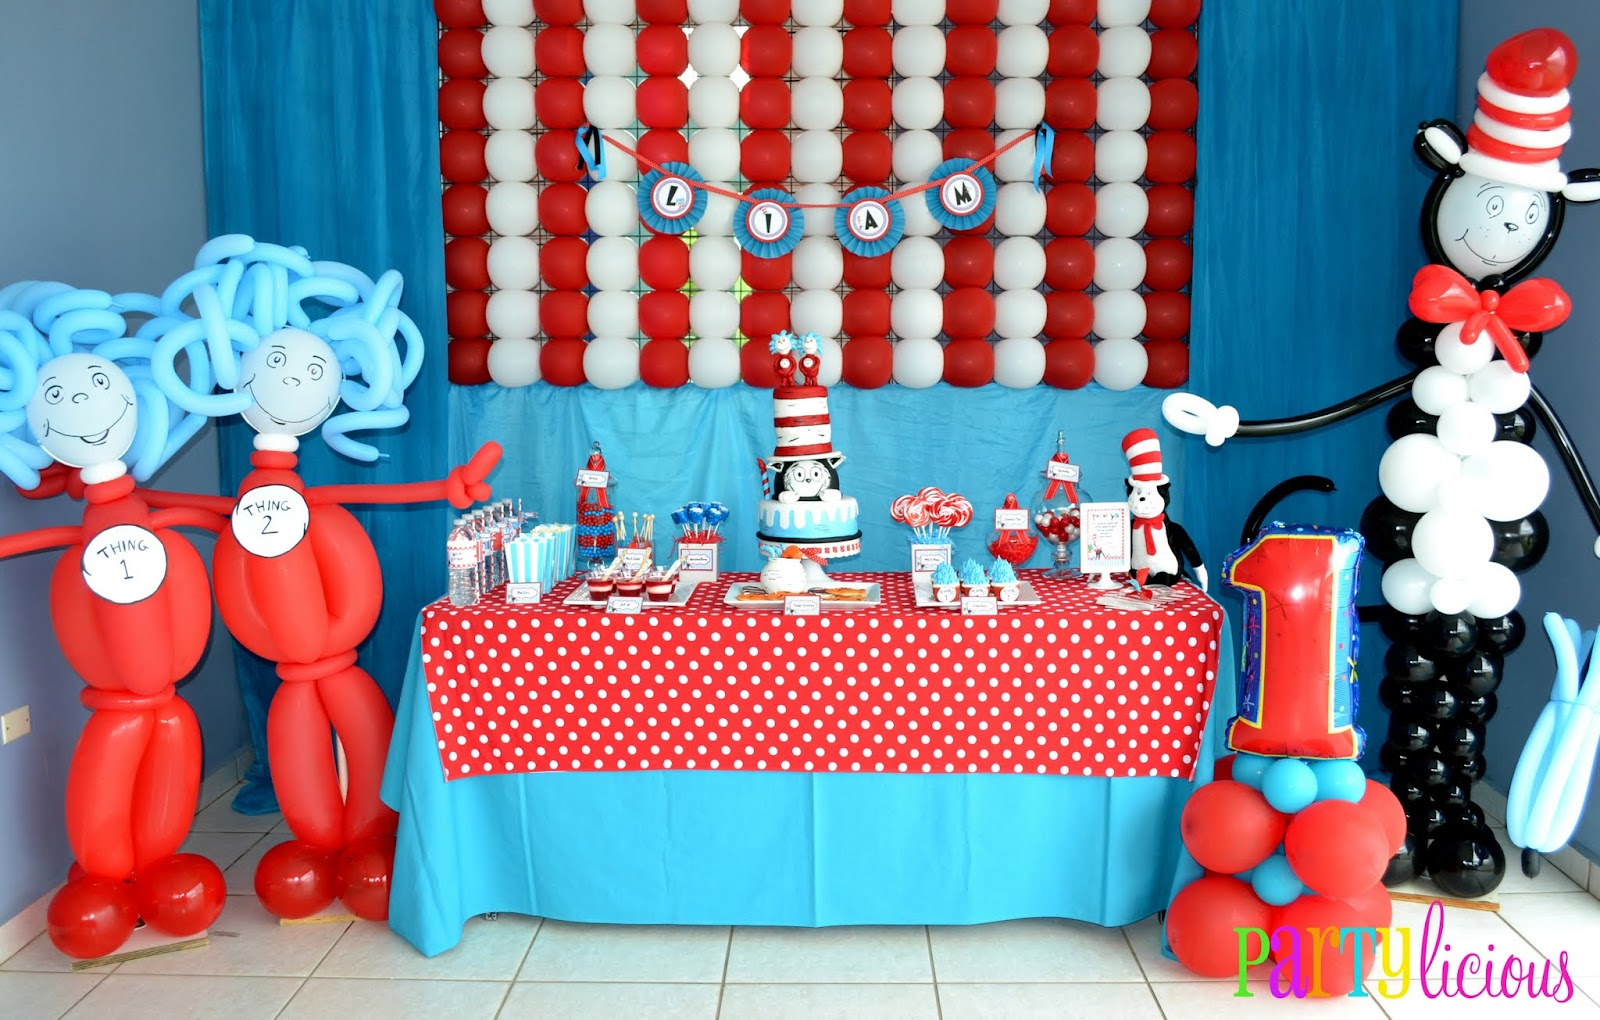 My Balloon Go To Girl Created Fantastic Sculptures Of The Characters And A Blue Red White Background I Rosette Banner With Birthday Boys